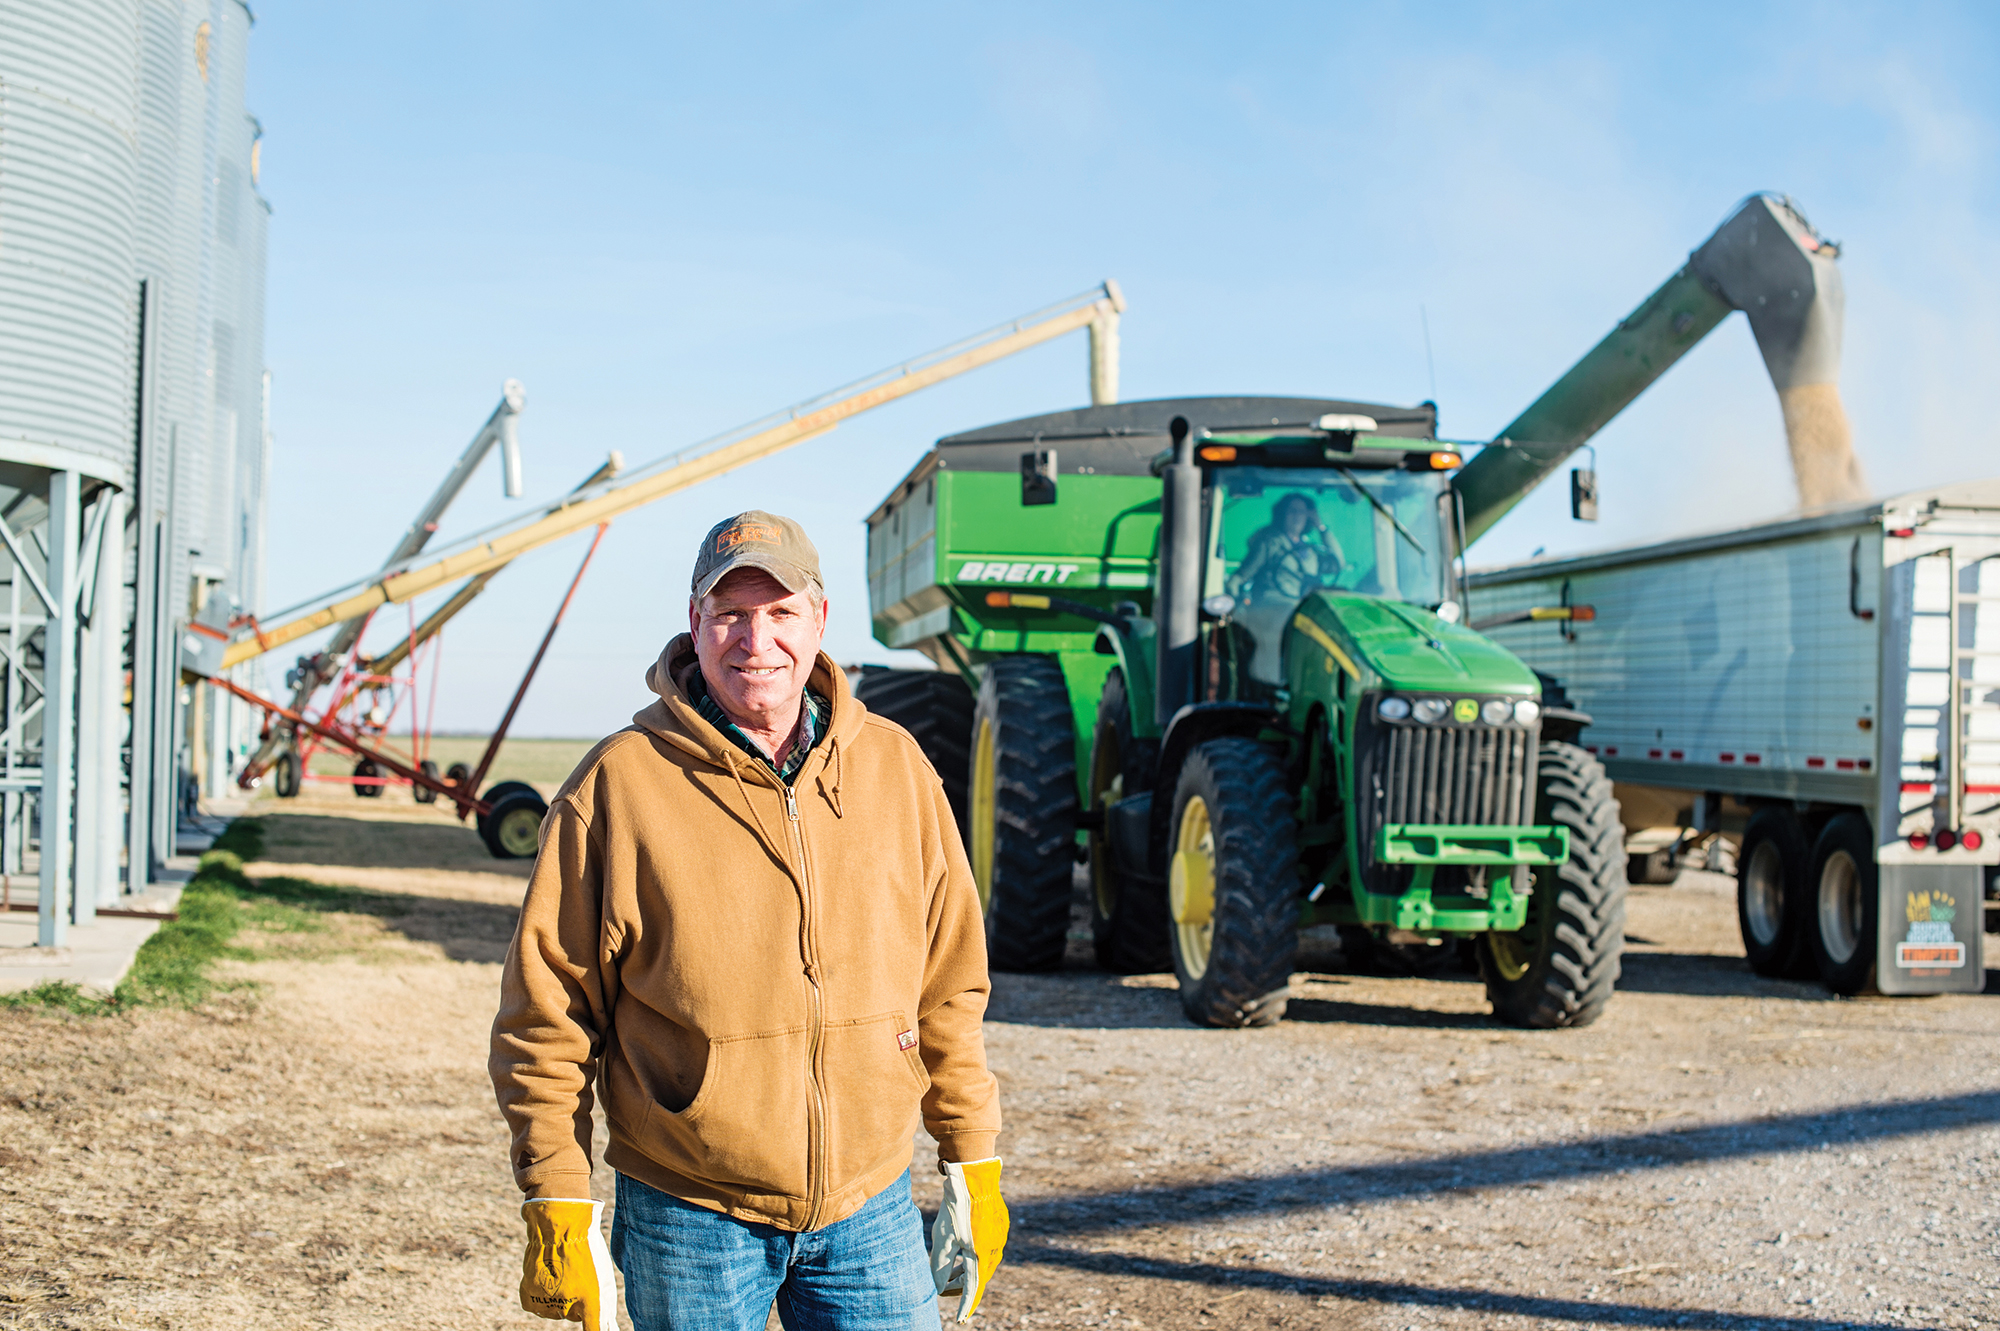 Farmer smiling in front of farm equipment